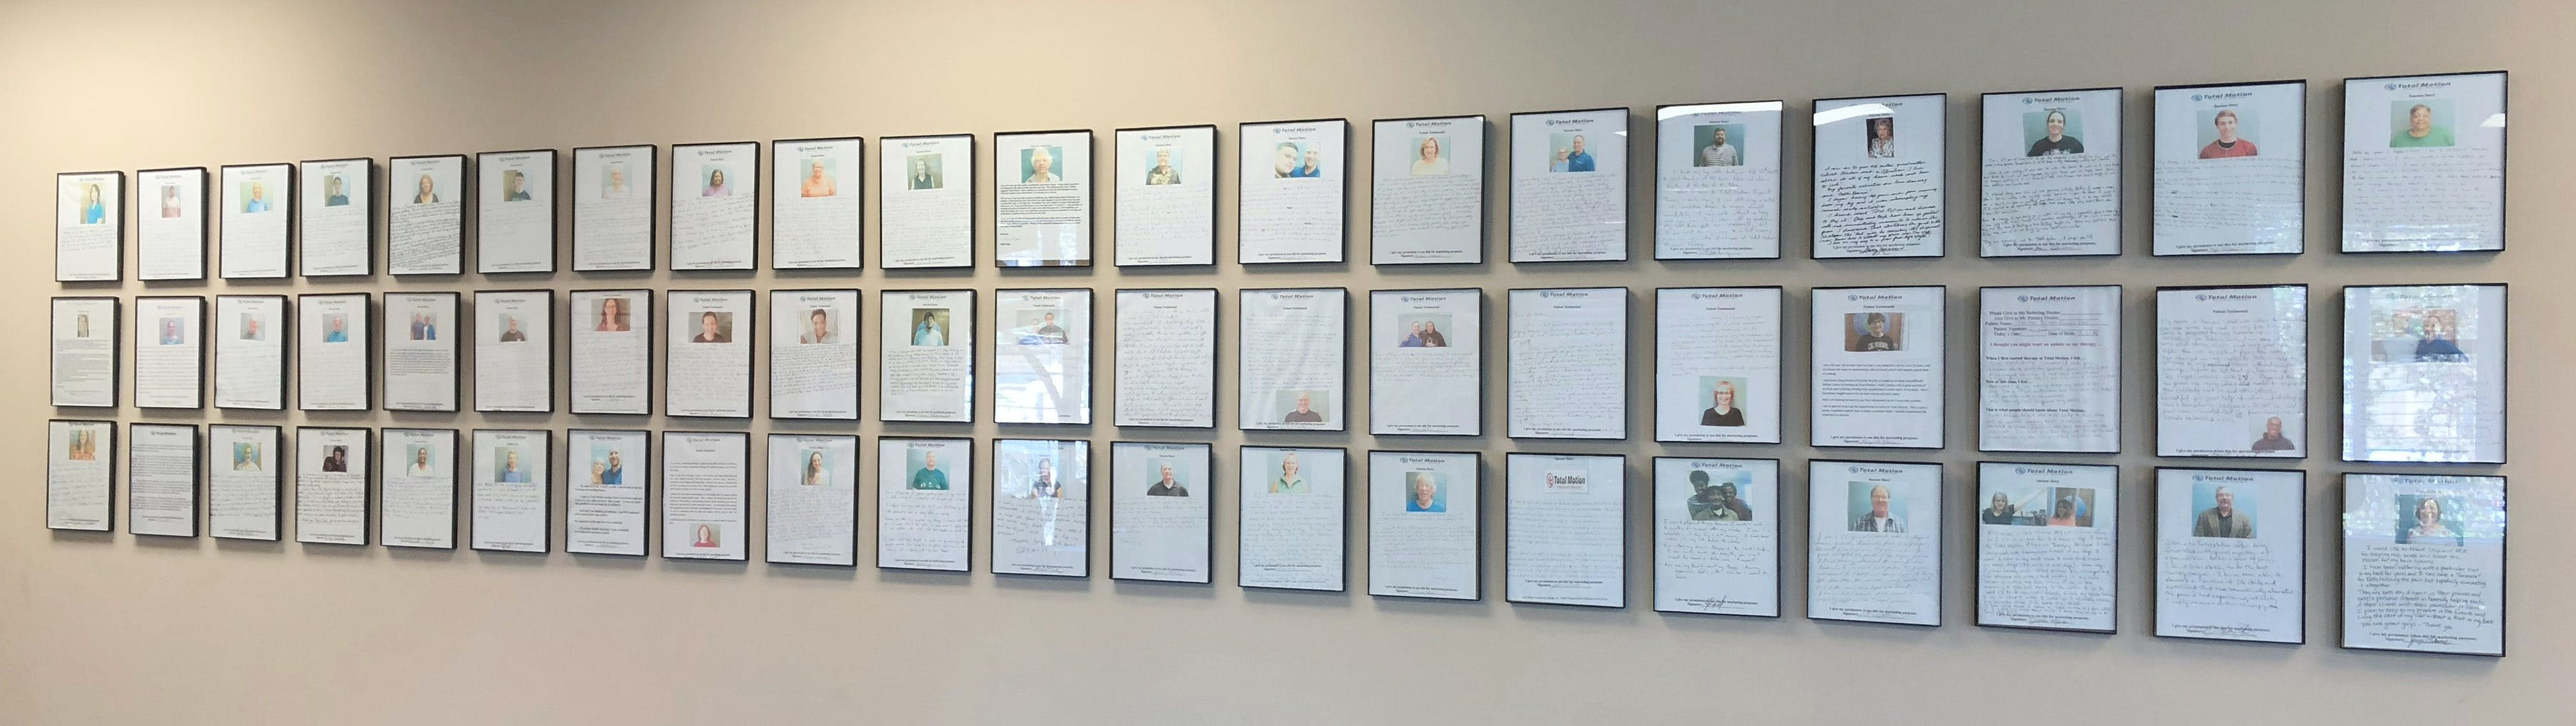 Total Motion Physical Therapy | Raleigh NC | Testimonial Wall